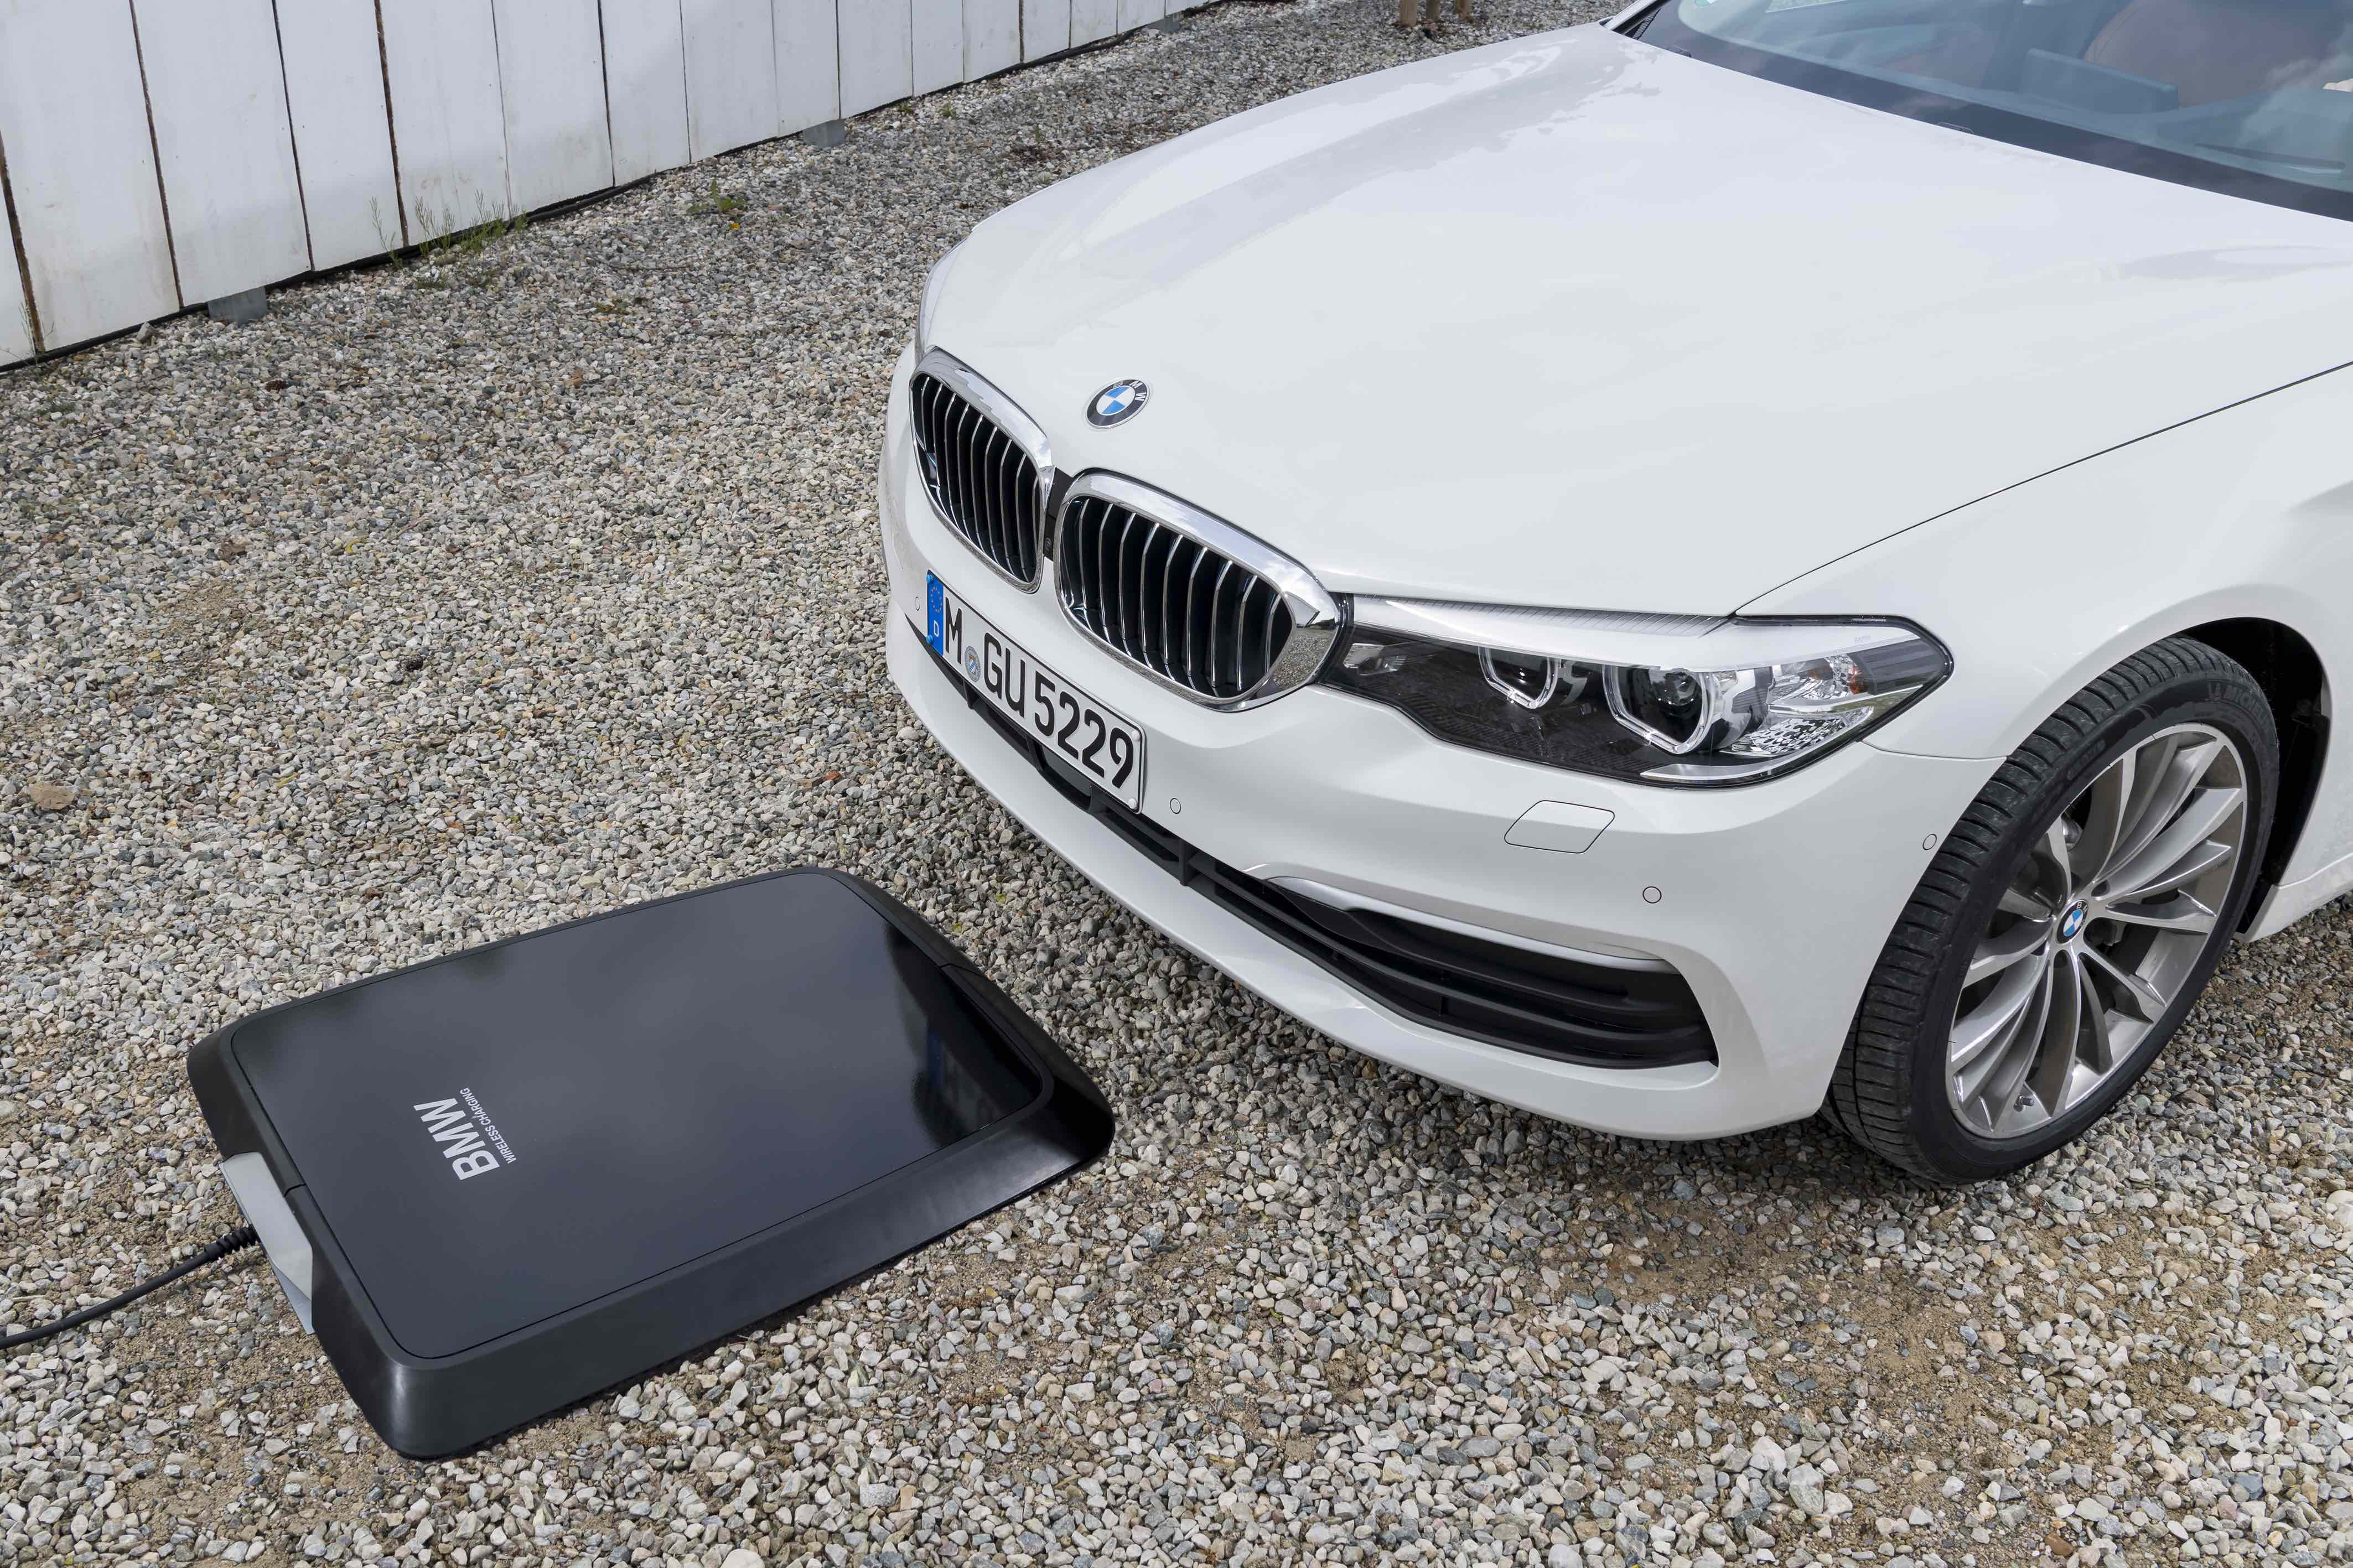 bmw-wireless-carregamento_2.jpg